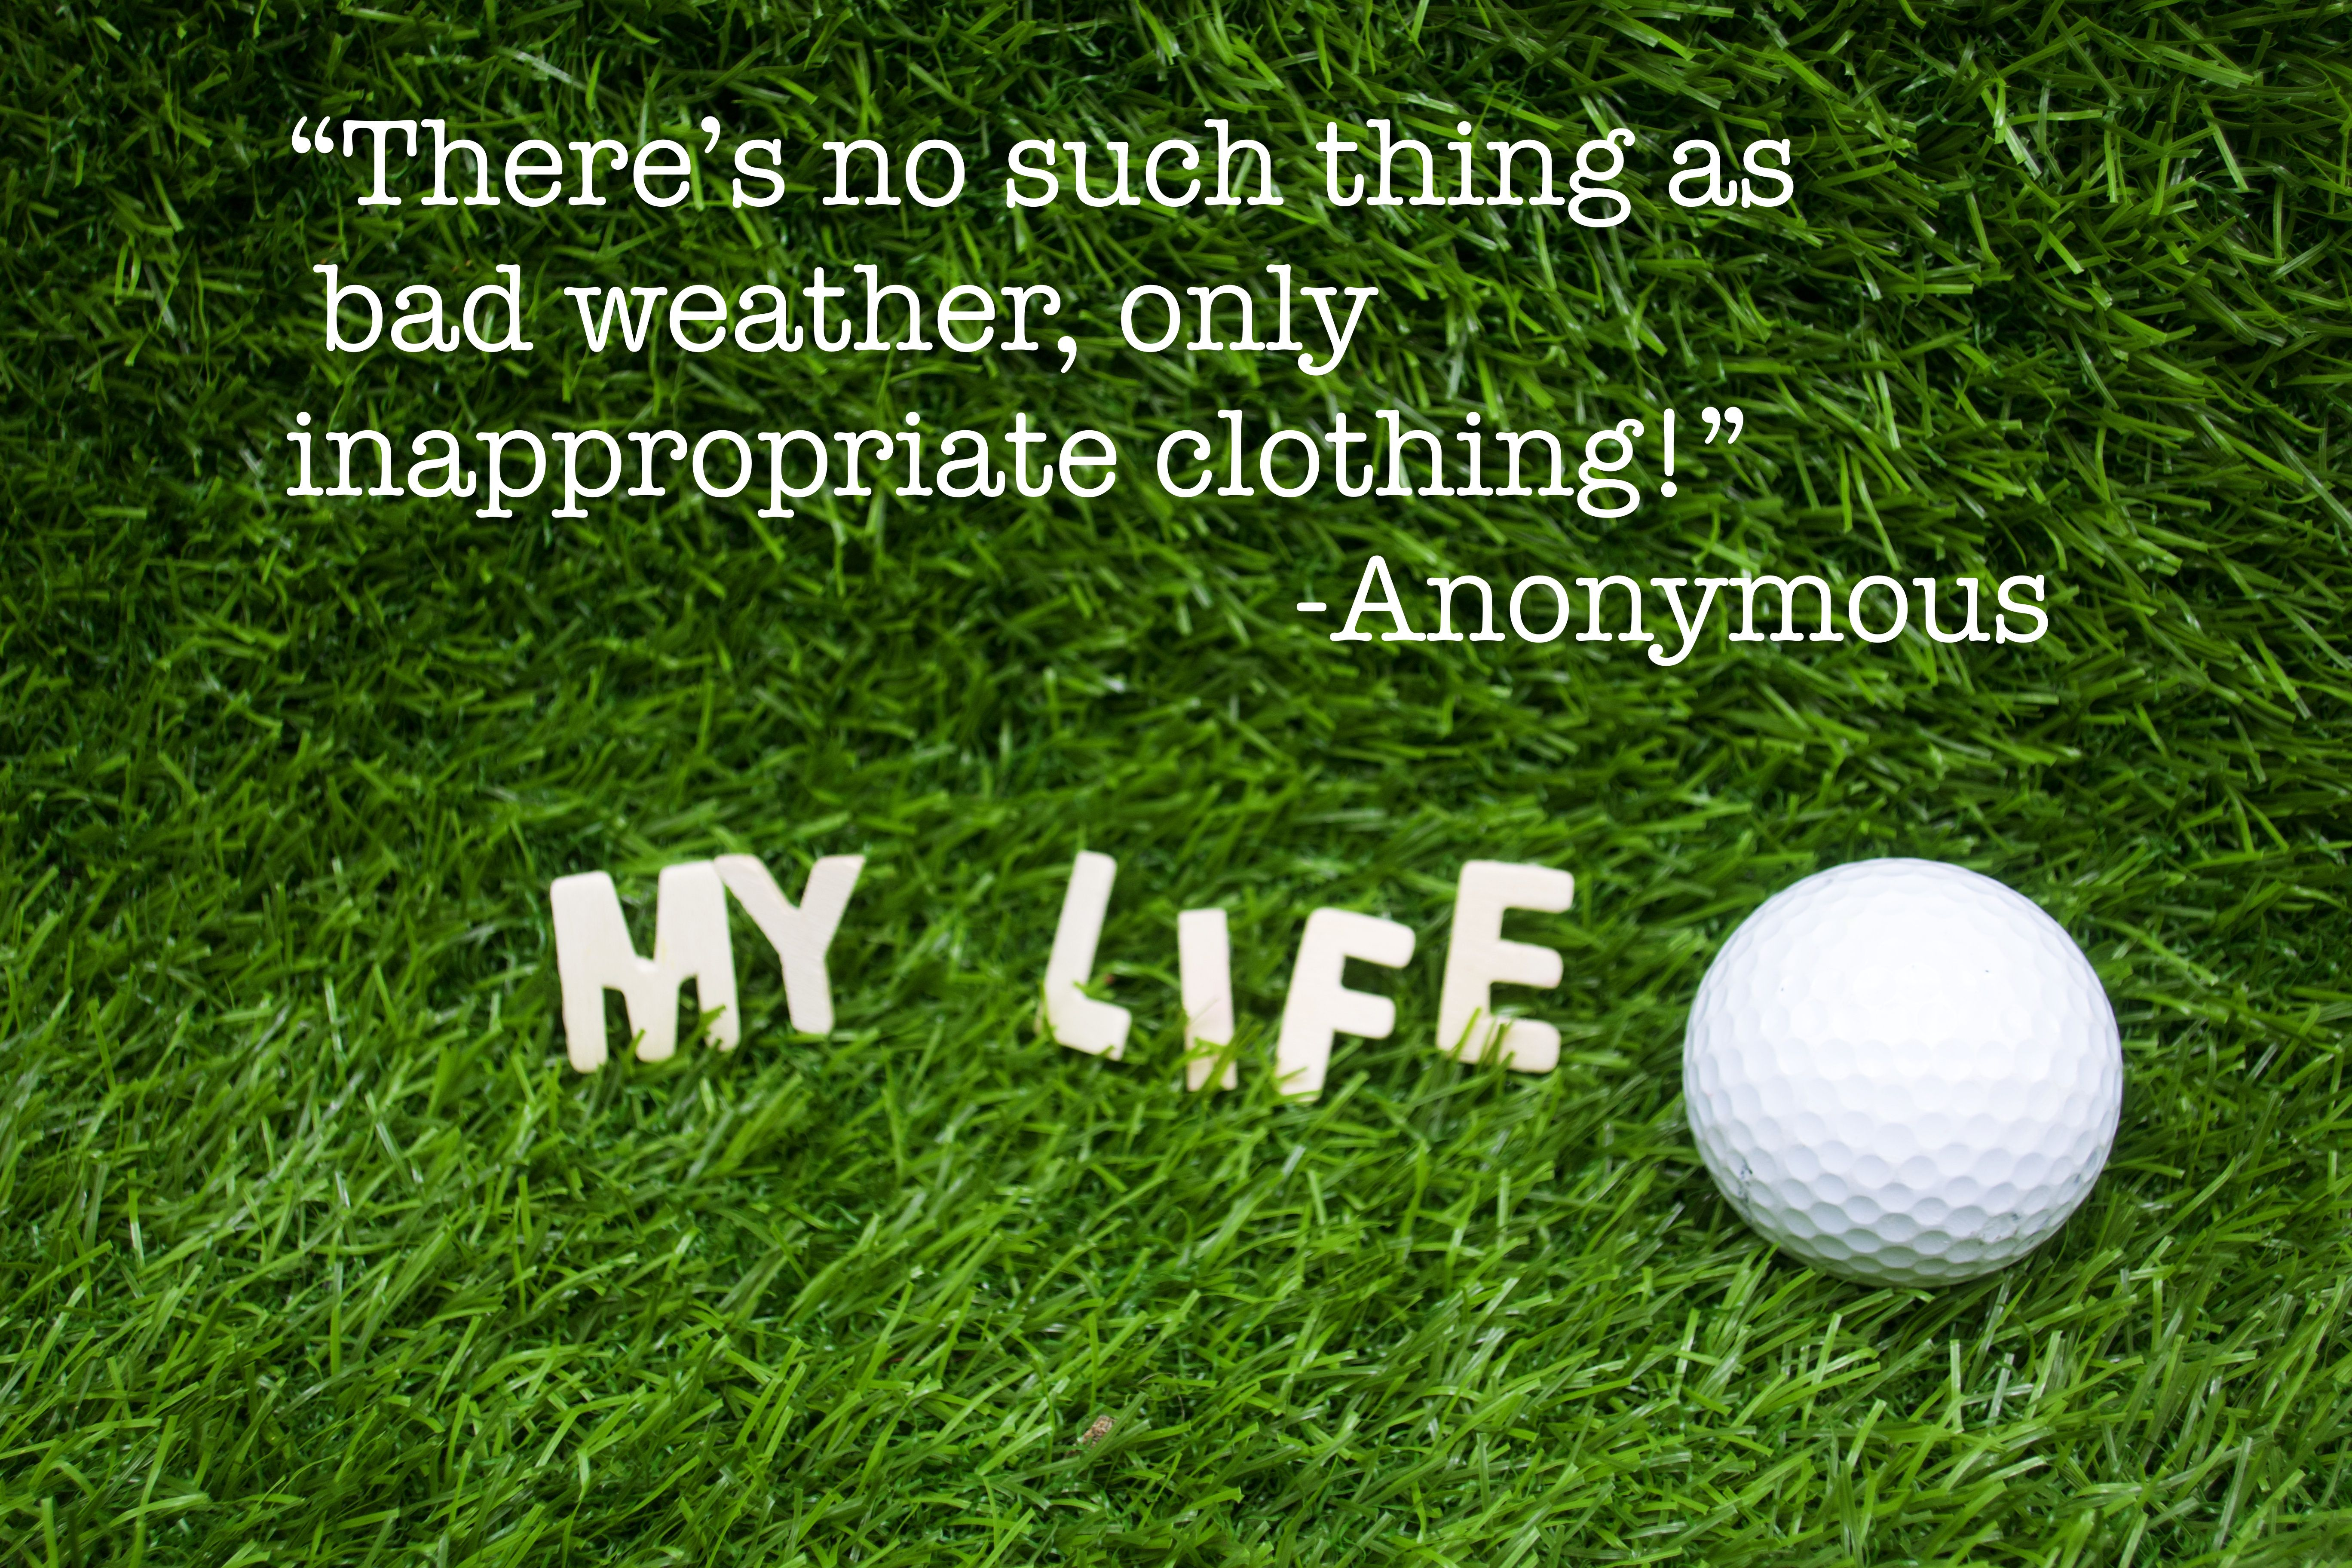 Golf Quote And Slogan Golfquotes Golfquote Golf Quotes Golf Quotes Funny Golf Inspiration Quotes